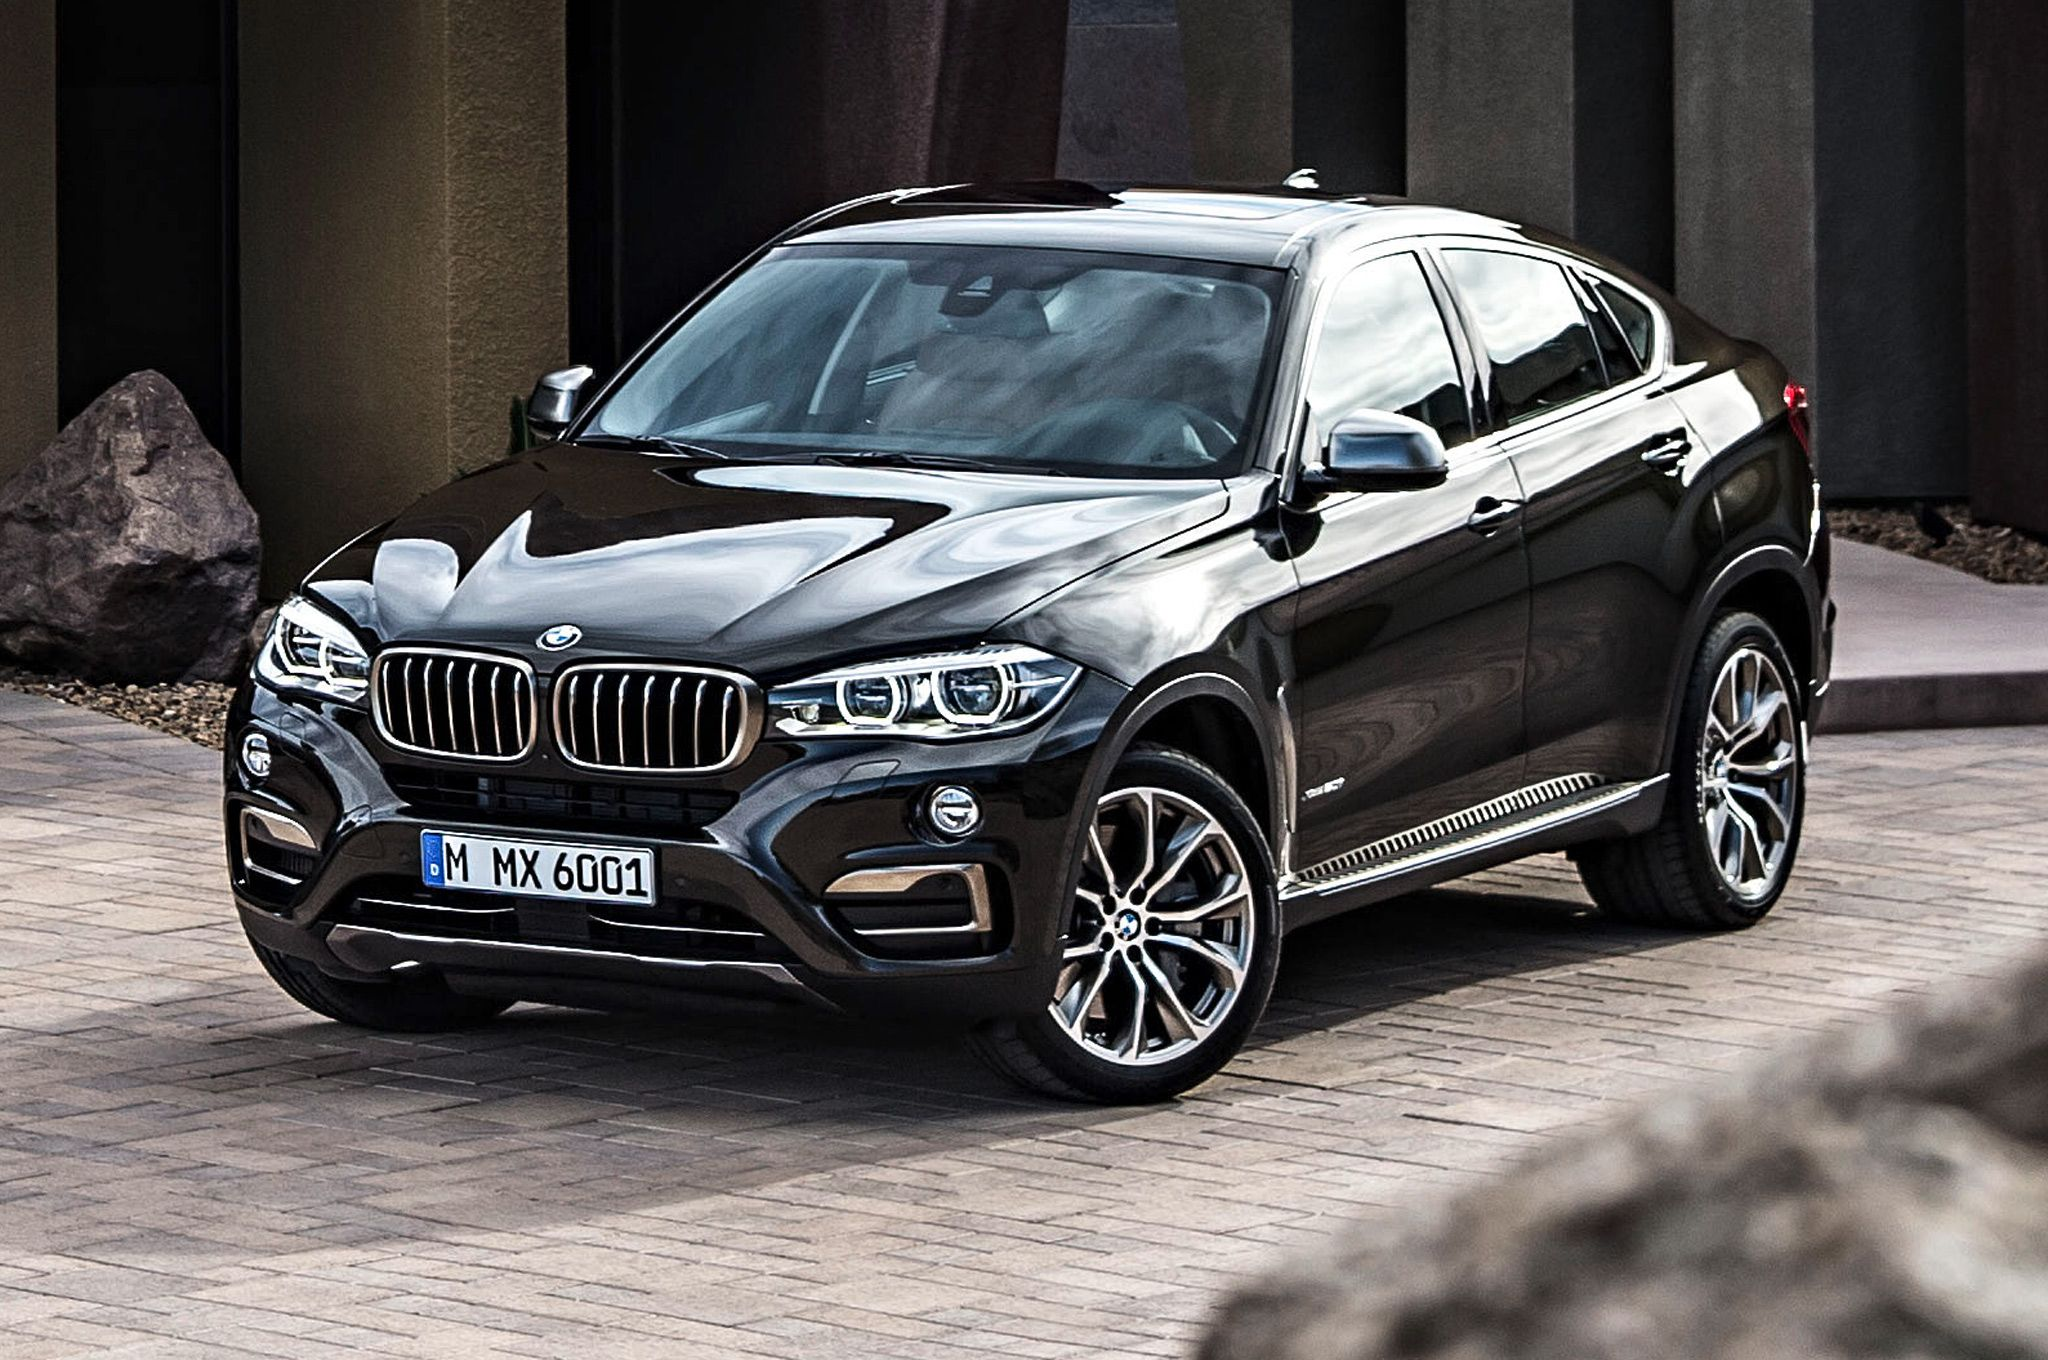 2015 bmw x6 front side view in driveway start your engines bmw rh pinterest com